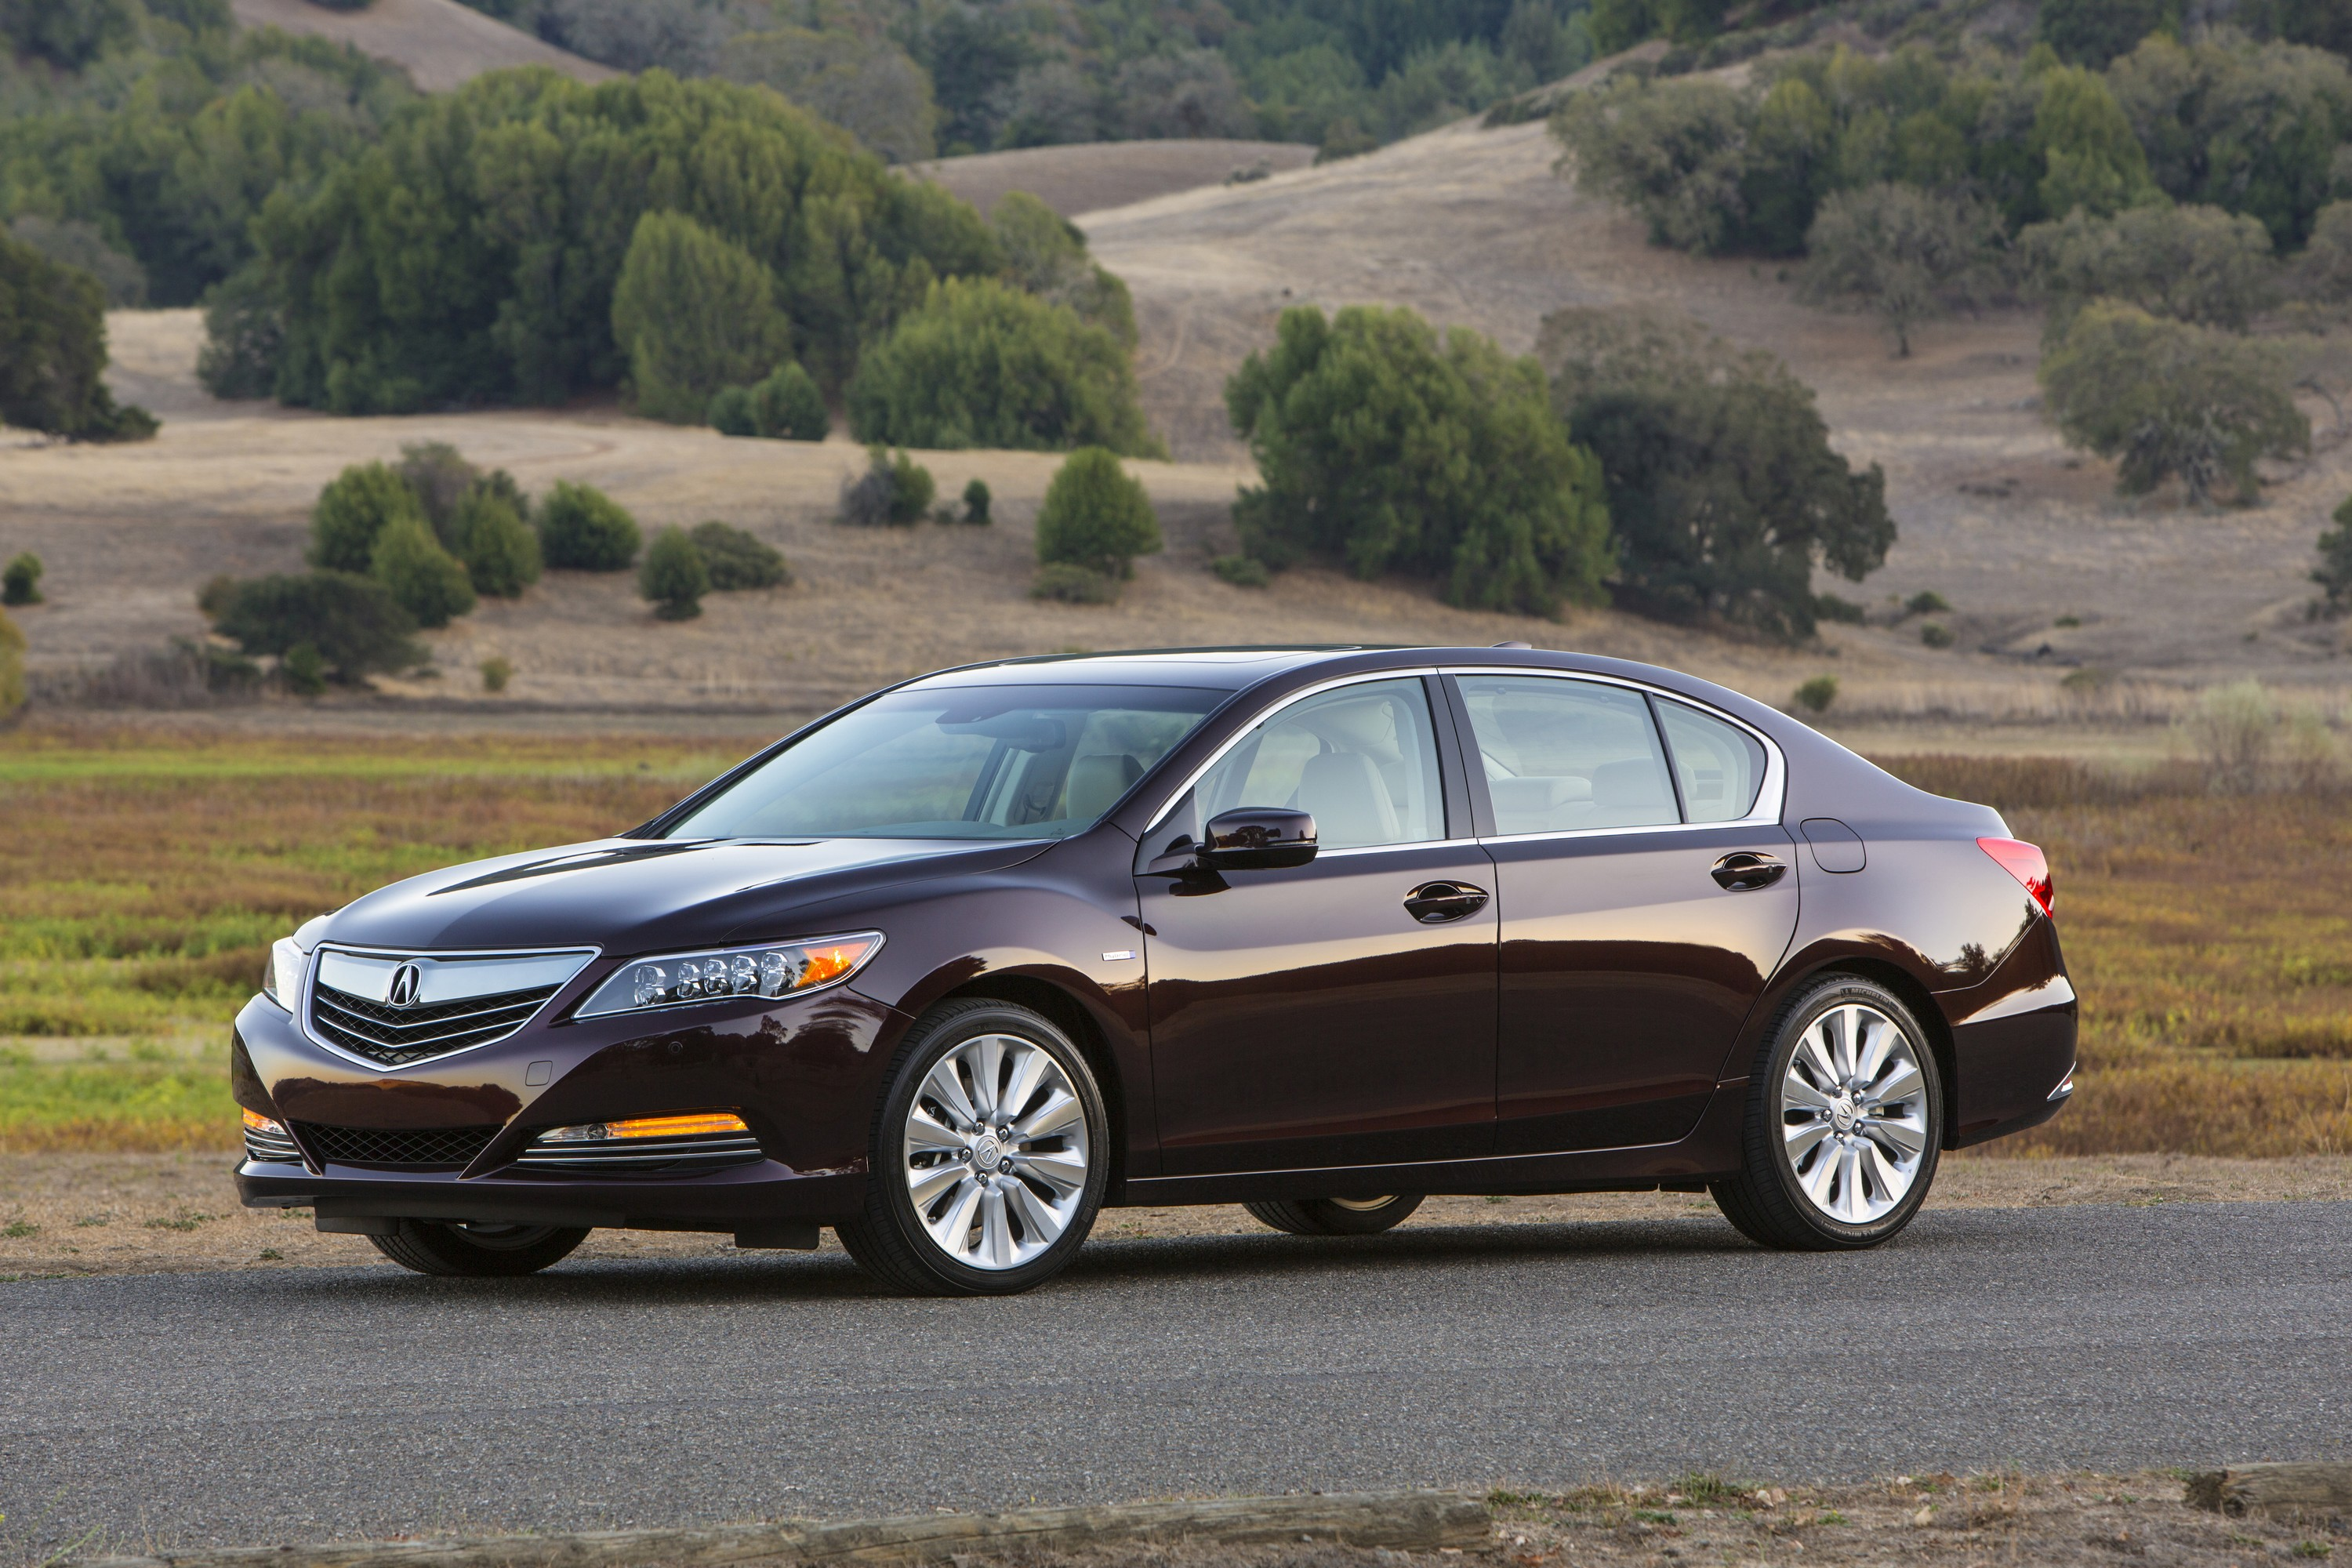 acura recalls mdx rlx to fix automatic braking fault. Black Bedroom Furniture Sets. Home Design Ideas